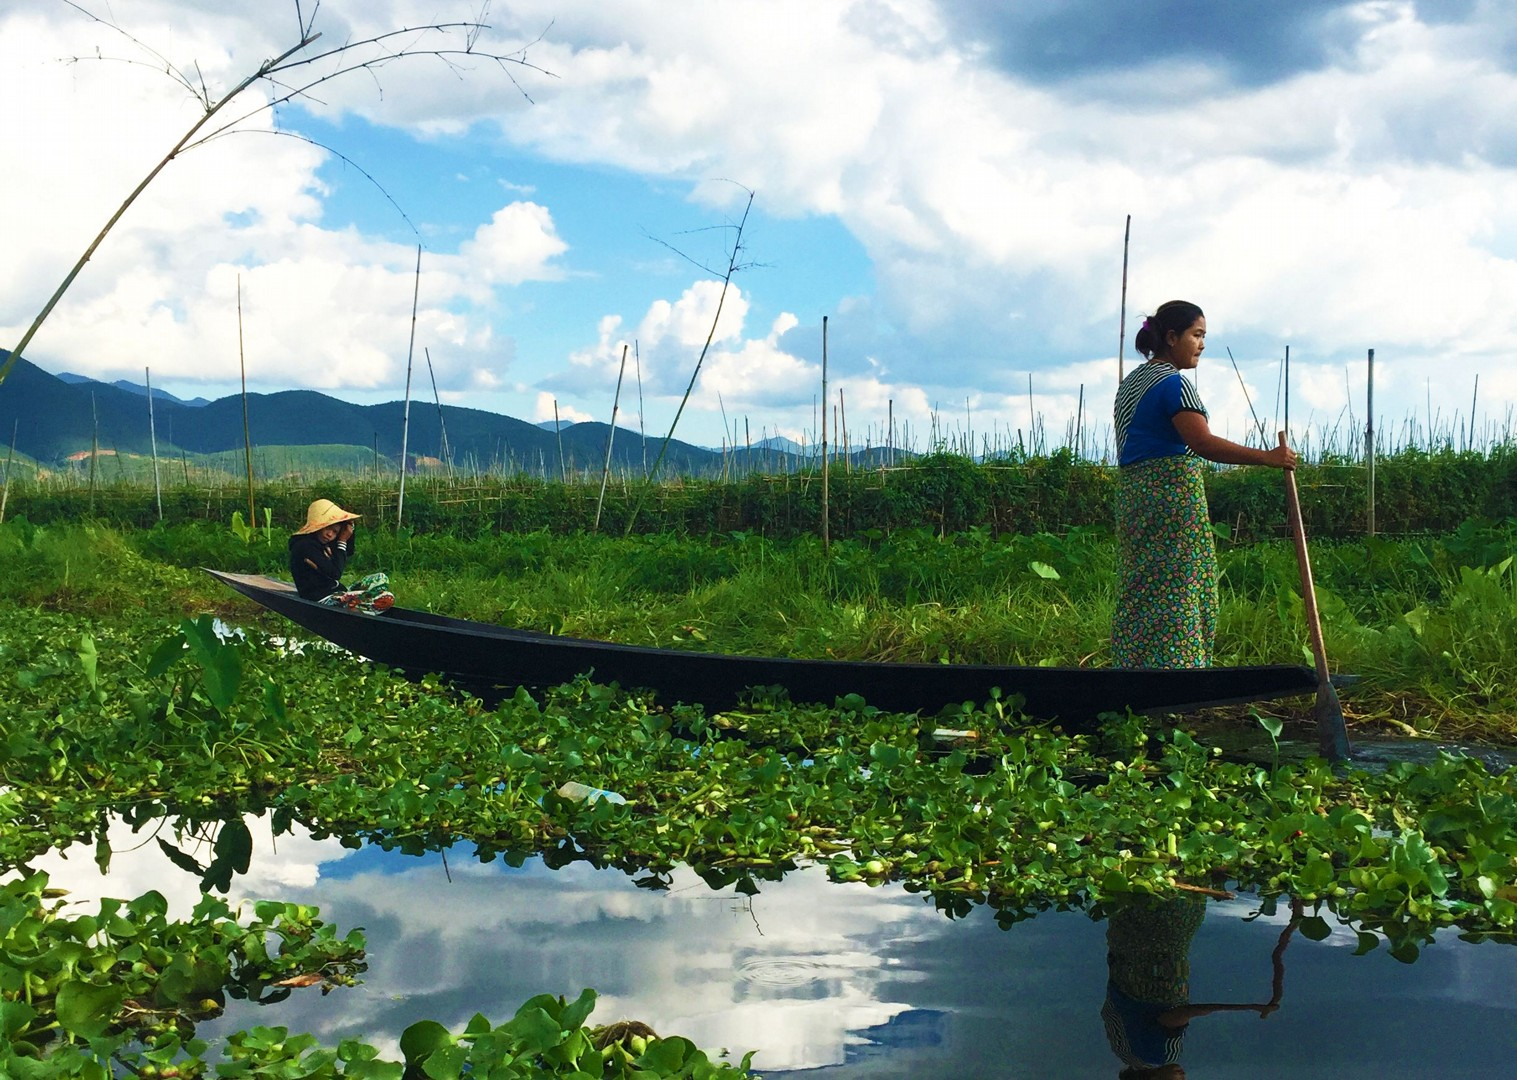 explore-idyllic-inle-lake-by-boat-burma-cycling-trip.jpg - Burma - Bagan and Beyond - Cycling Adventures